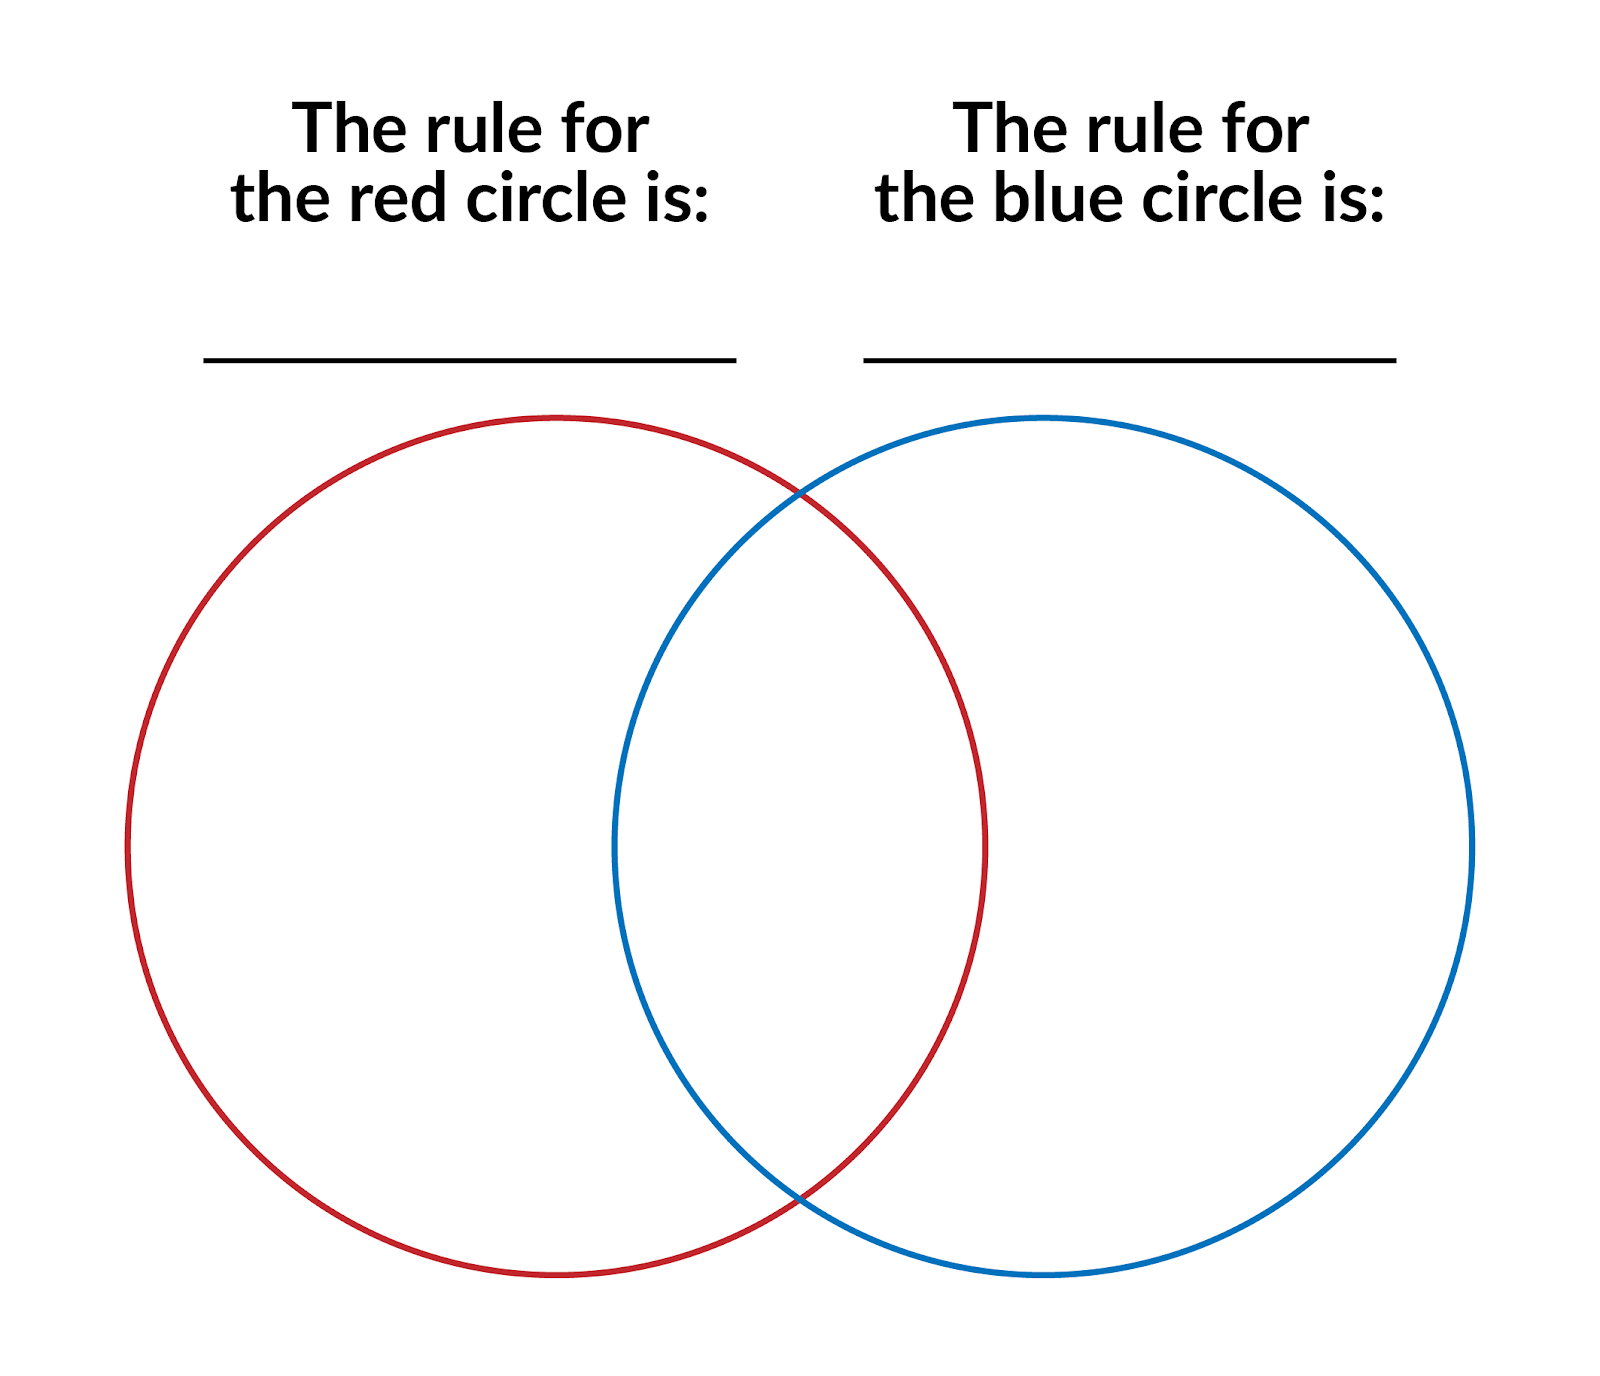 A red circle and a blue circle overlap. The rule for the red circle is ... The rule for the blue circle is ...